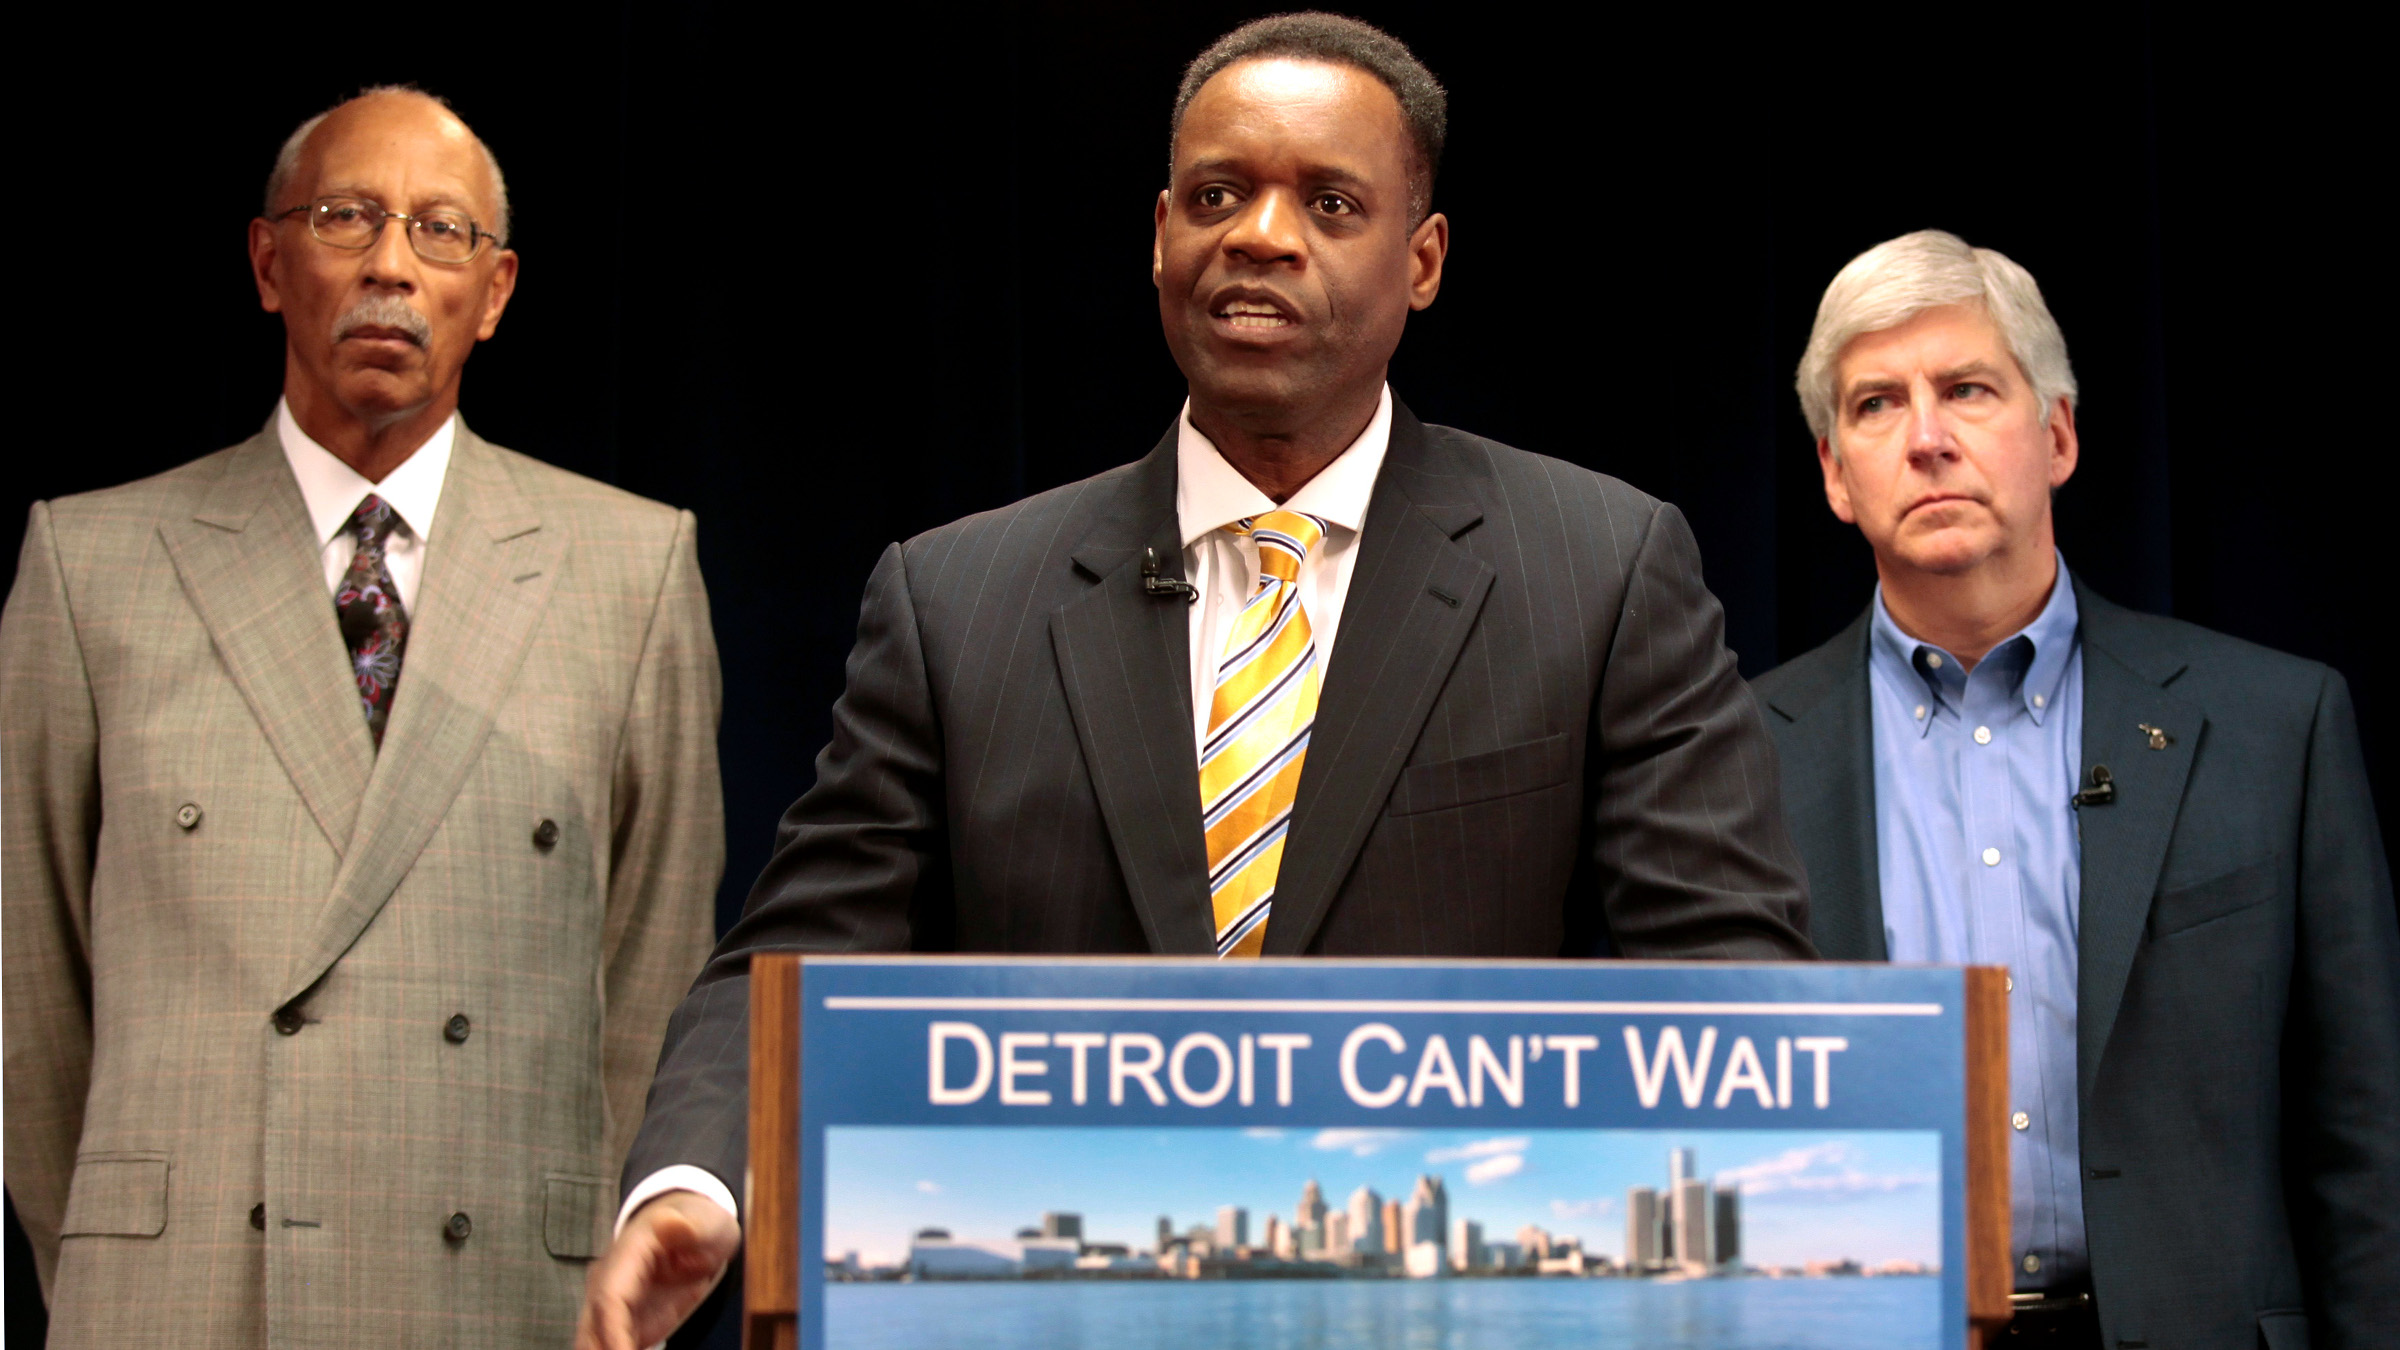 :awyer Kevyn Orr (C) addresses the media, as Detroit Mayor Dave Bing (L) and Michigan Governor Rick Snyder listen, after Snyder announced Orr as his choice for emergency financial manager for the city of Detroit, in the state offices at Cadillac Place in Detroit, Michigan March 14, 2013. For fixing the finances of the majority black city, Snyder tapped Orr, an African-American lawyer and life-long Democrat who studied in Michigan and specializes in corporate bankruptcy. At his presentation to the Detroit media on Thursday, Orr acknowledged the political pressures on Snyder, including from those who asked why he was spending so much time on Detroit.